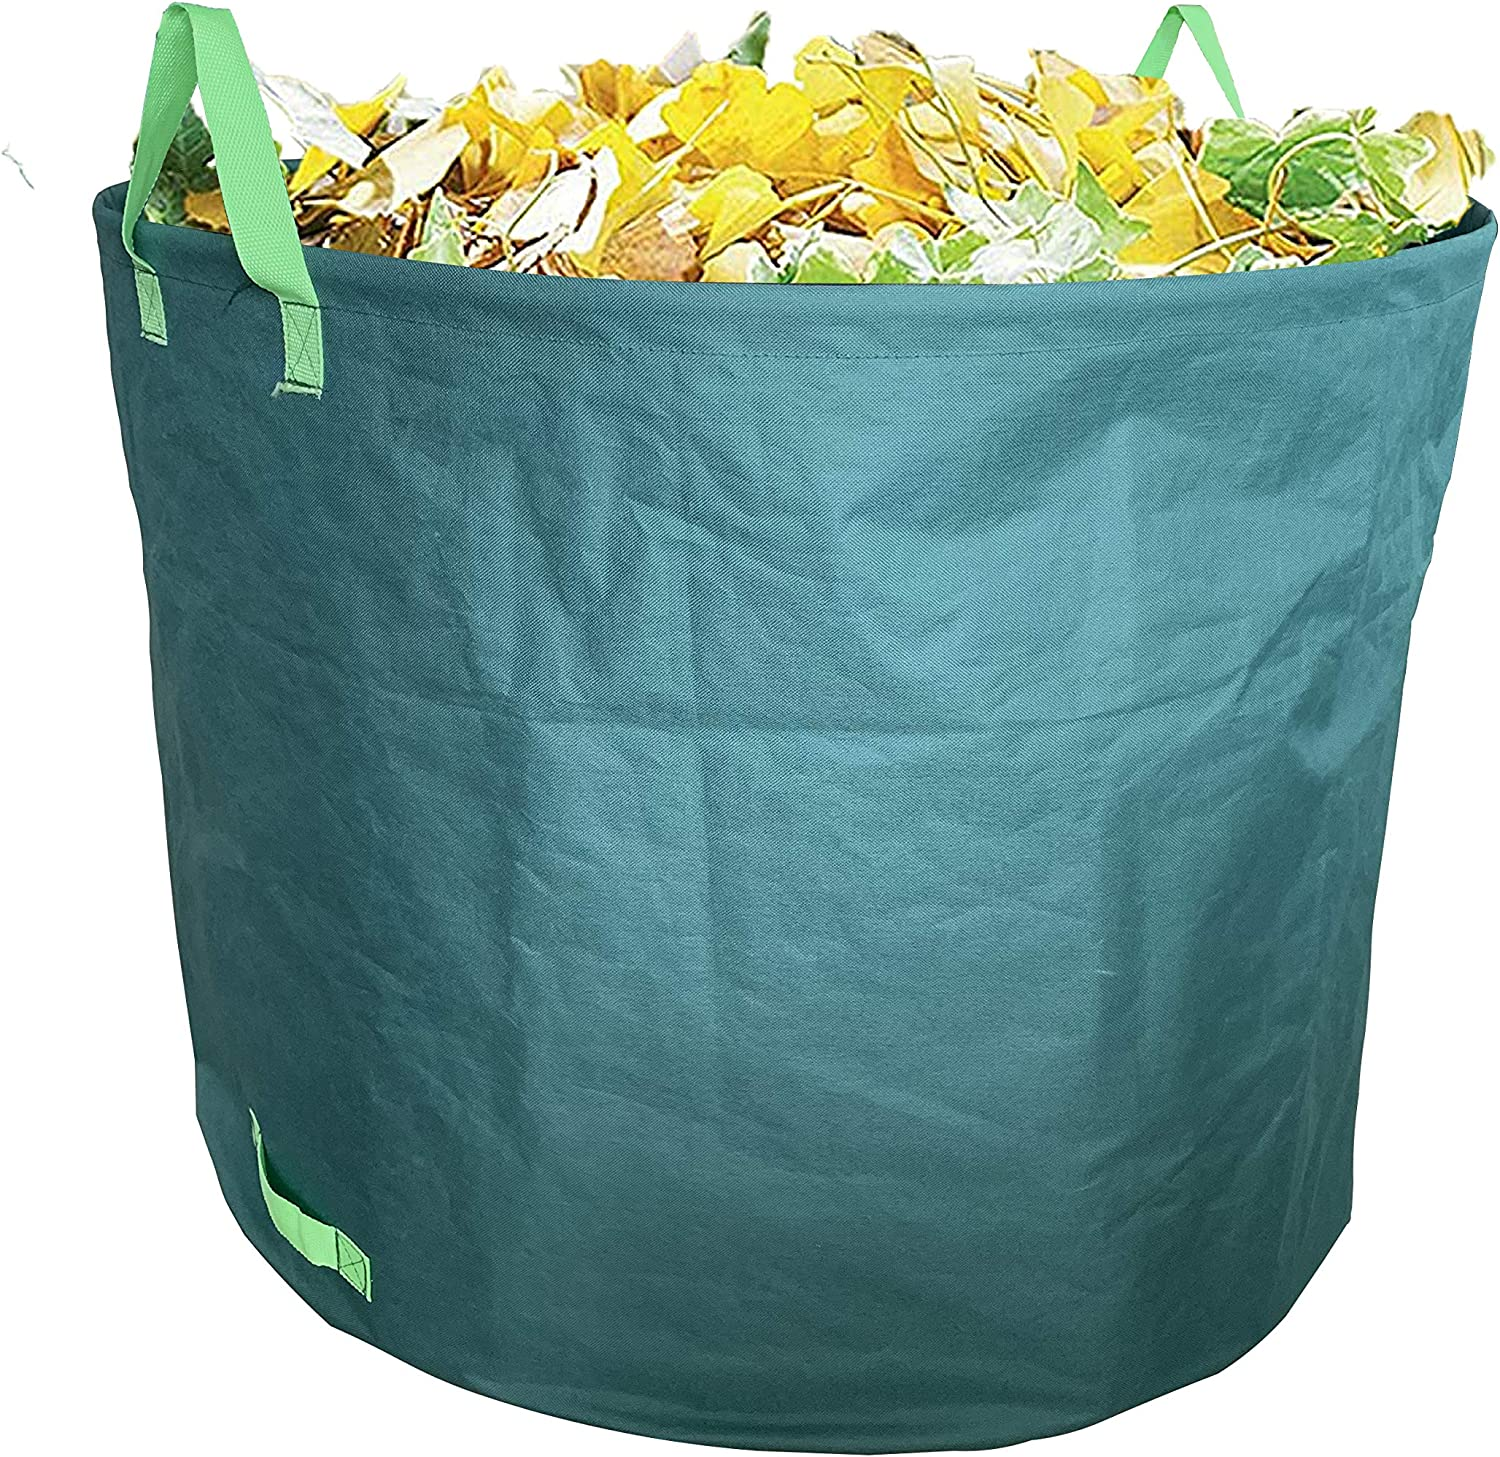 Ugold Fabric Reusable Yard Waste Garden Cheap Special Campaign SALE Start Work for Leaf Bag